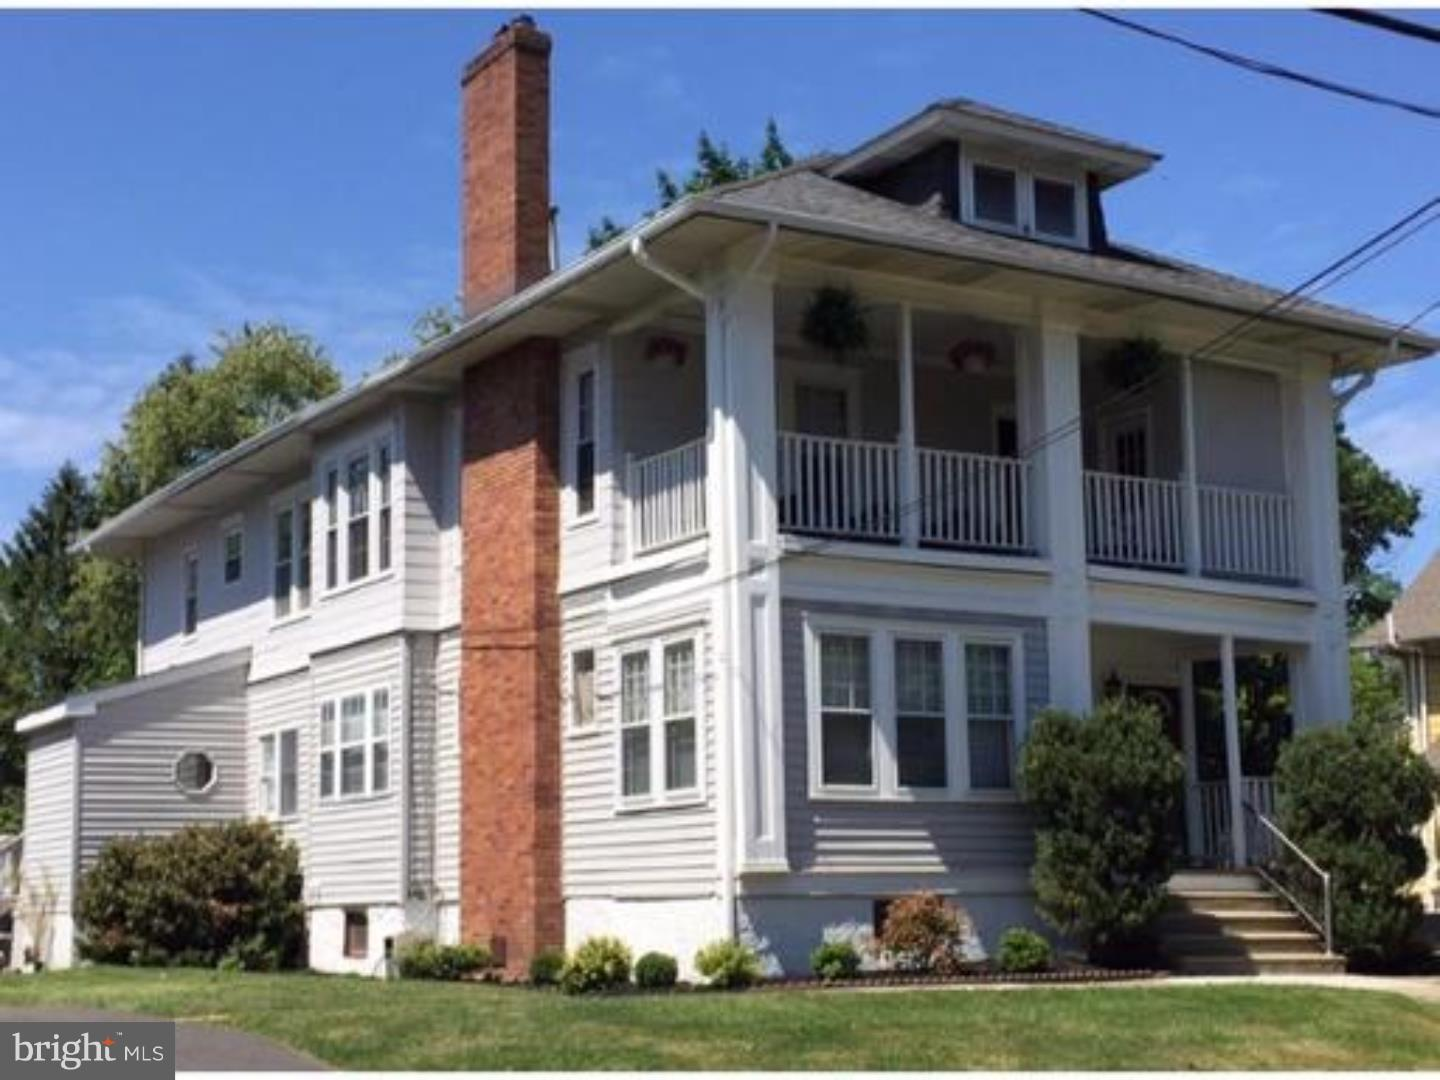 Triplex for Sale at 102 7TH Avenue Haddon Heights, New Jersey 08035 United States